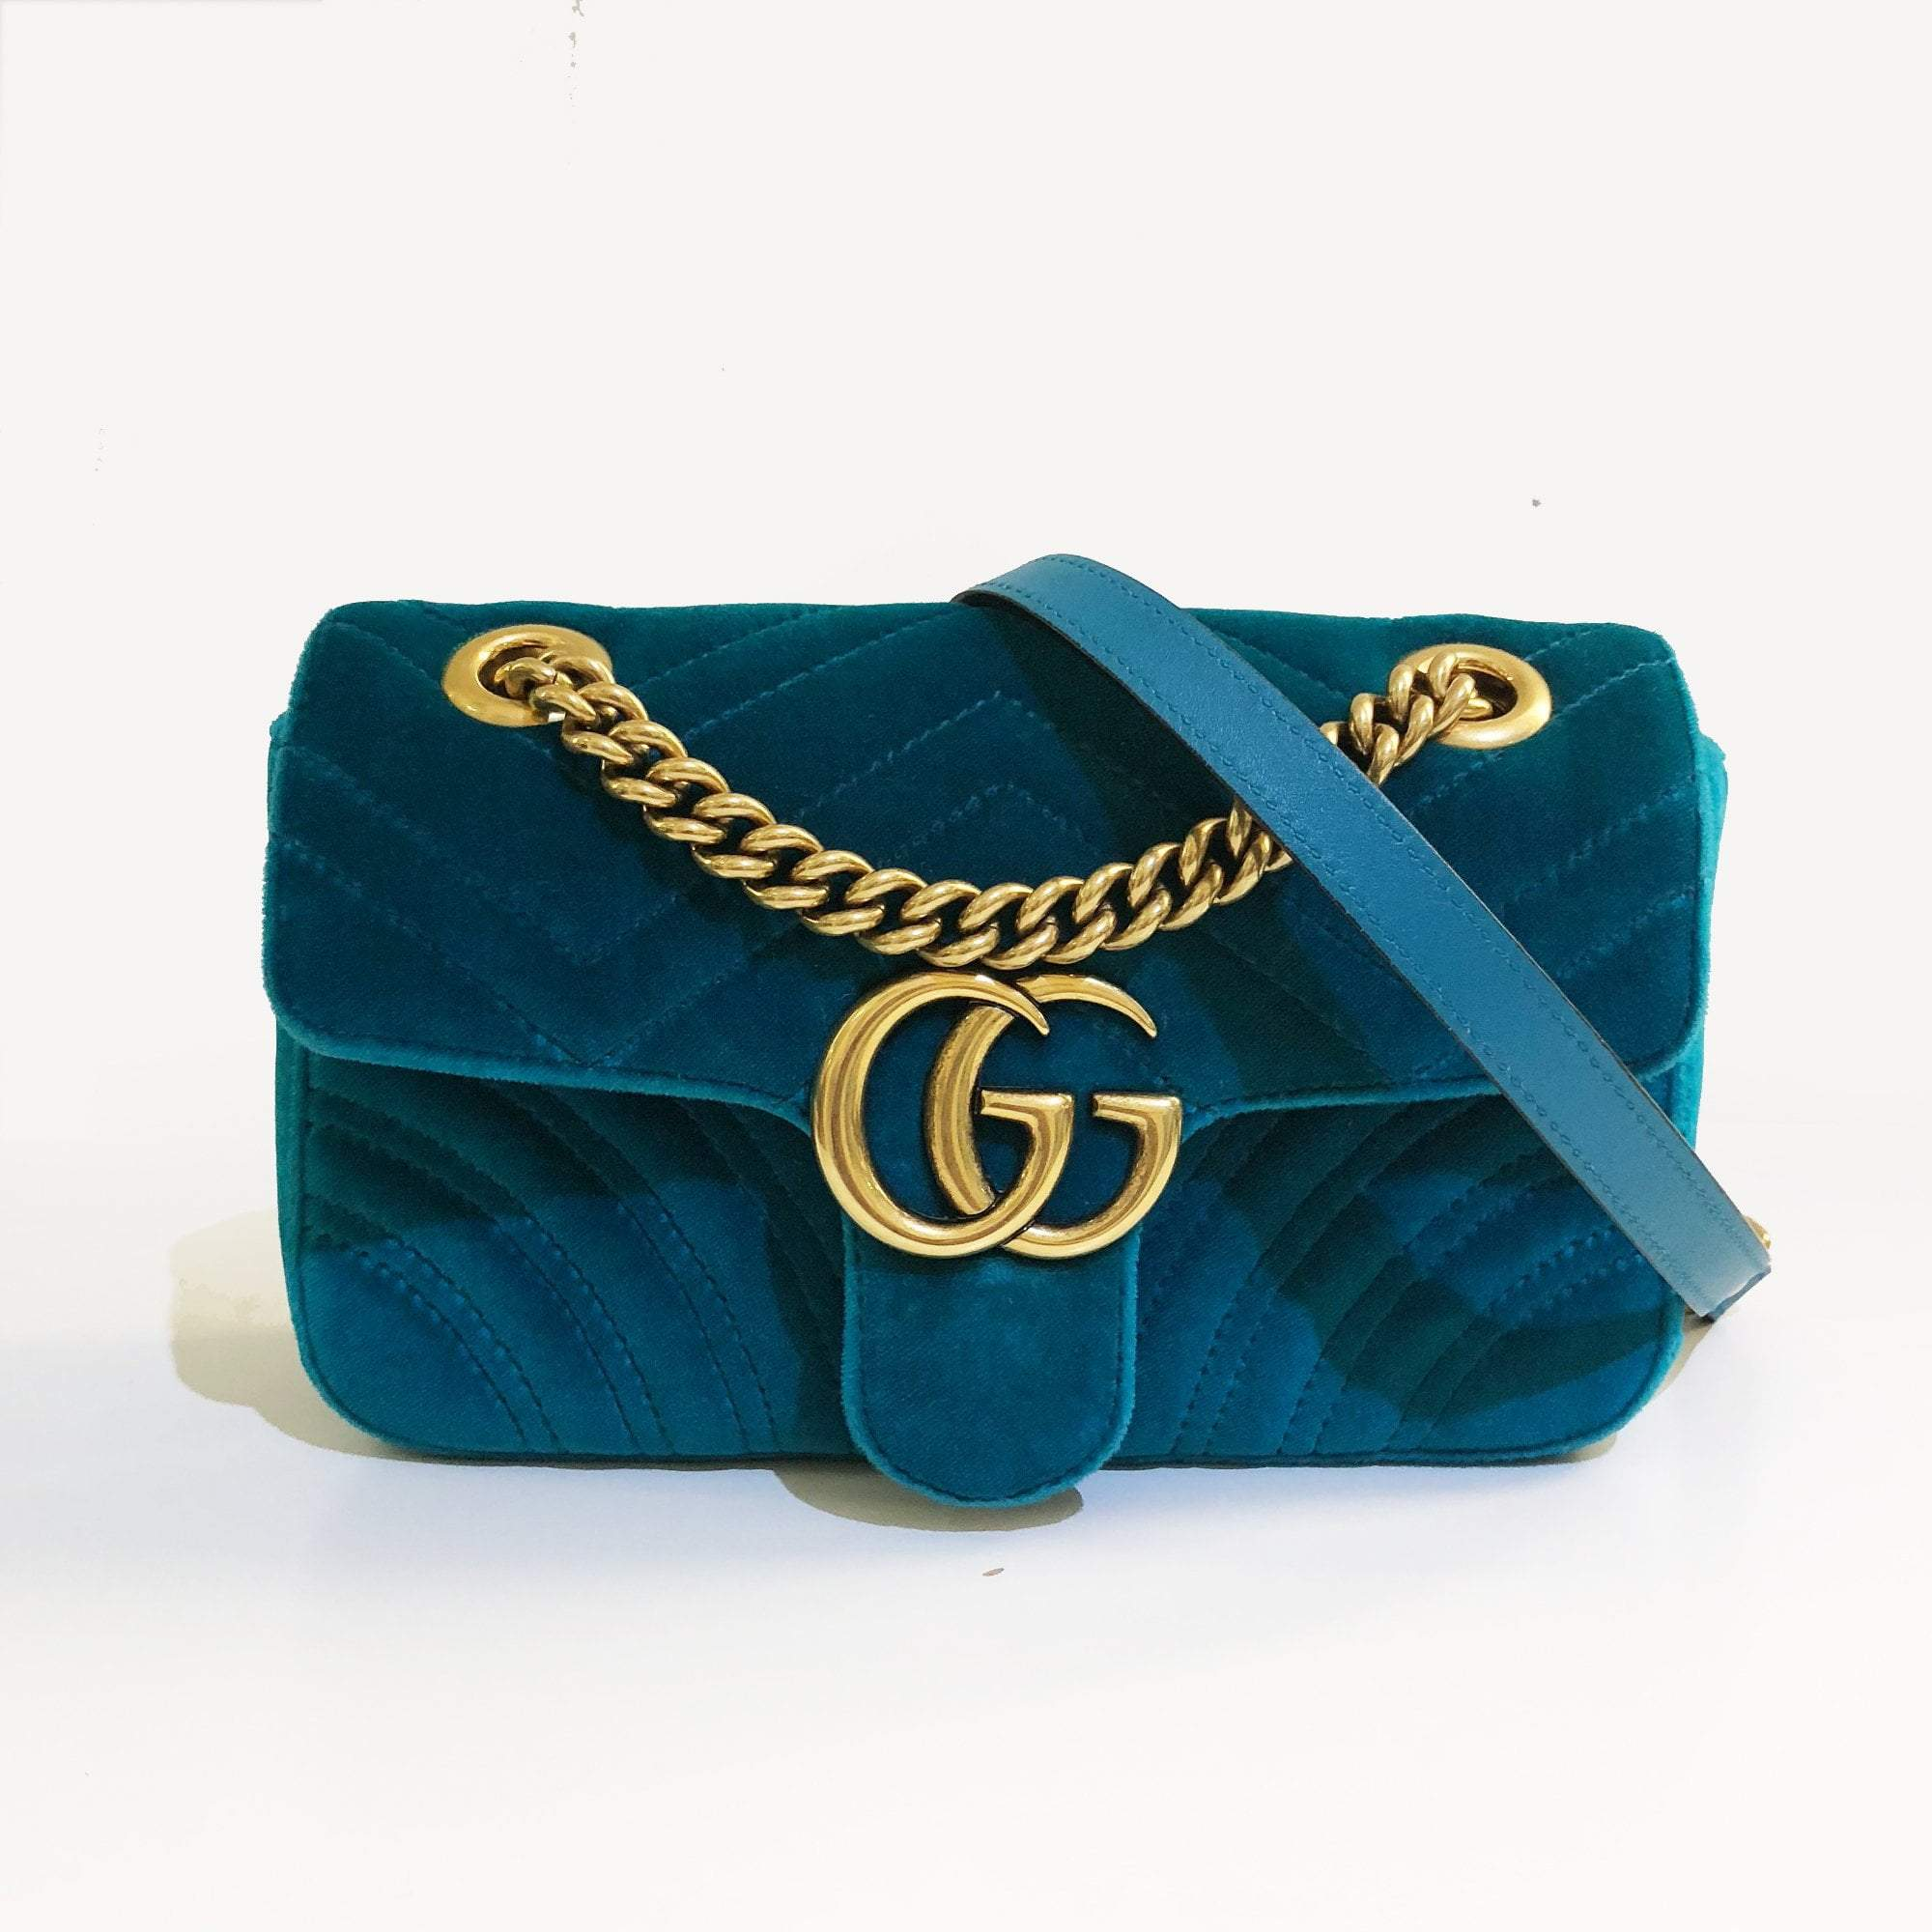 6d27c13eb72 Gucci GG Mini Marmont velvet shoulder bag – Garderobe